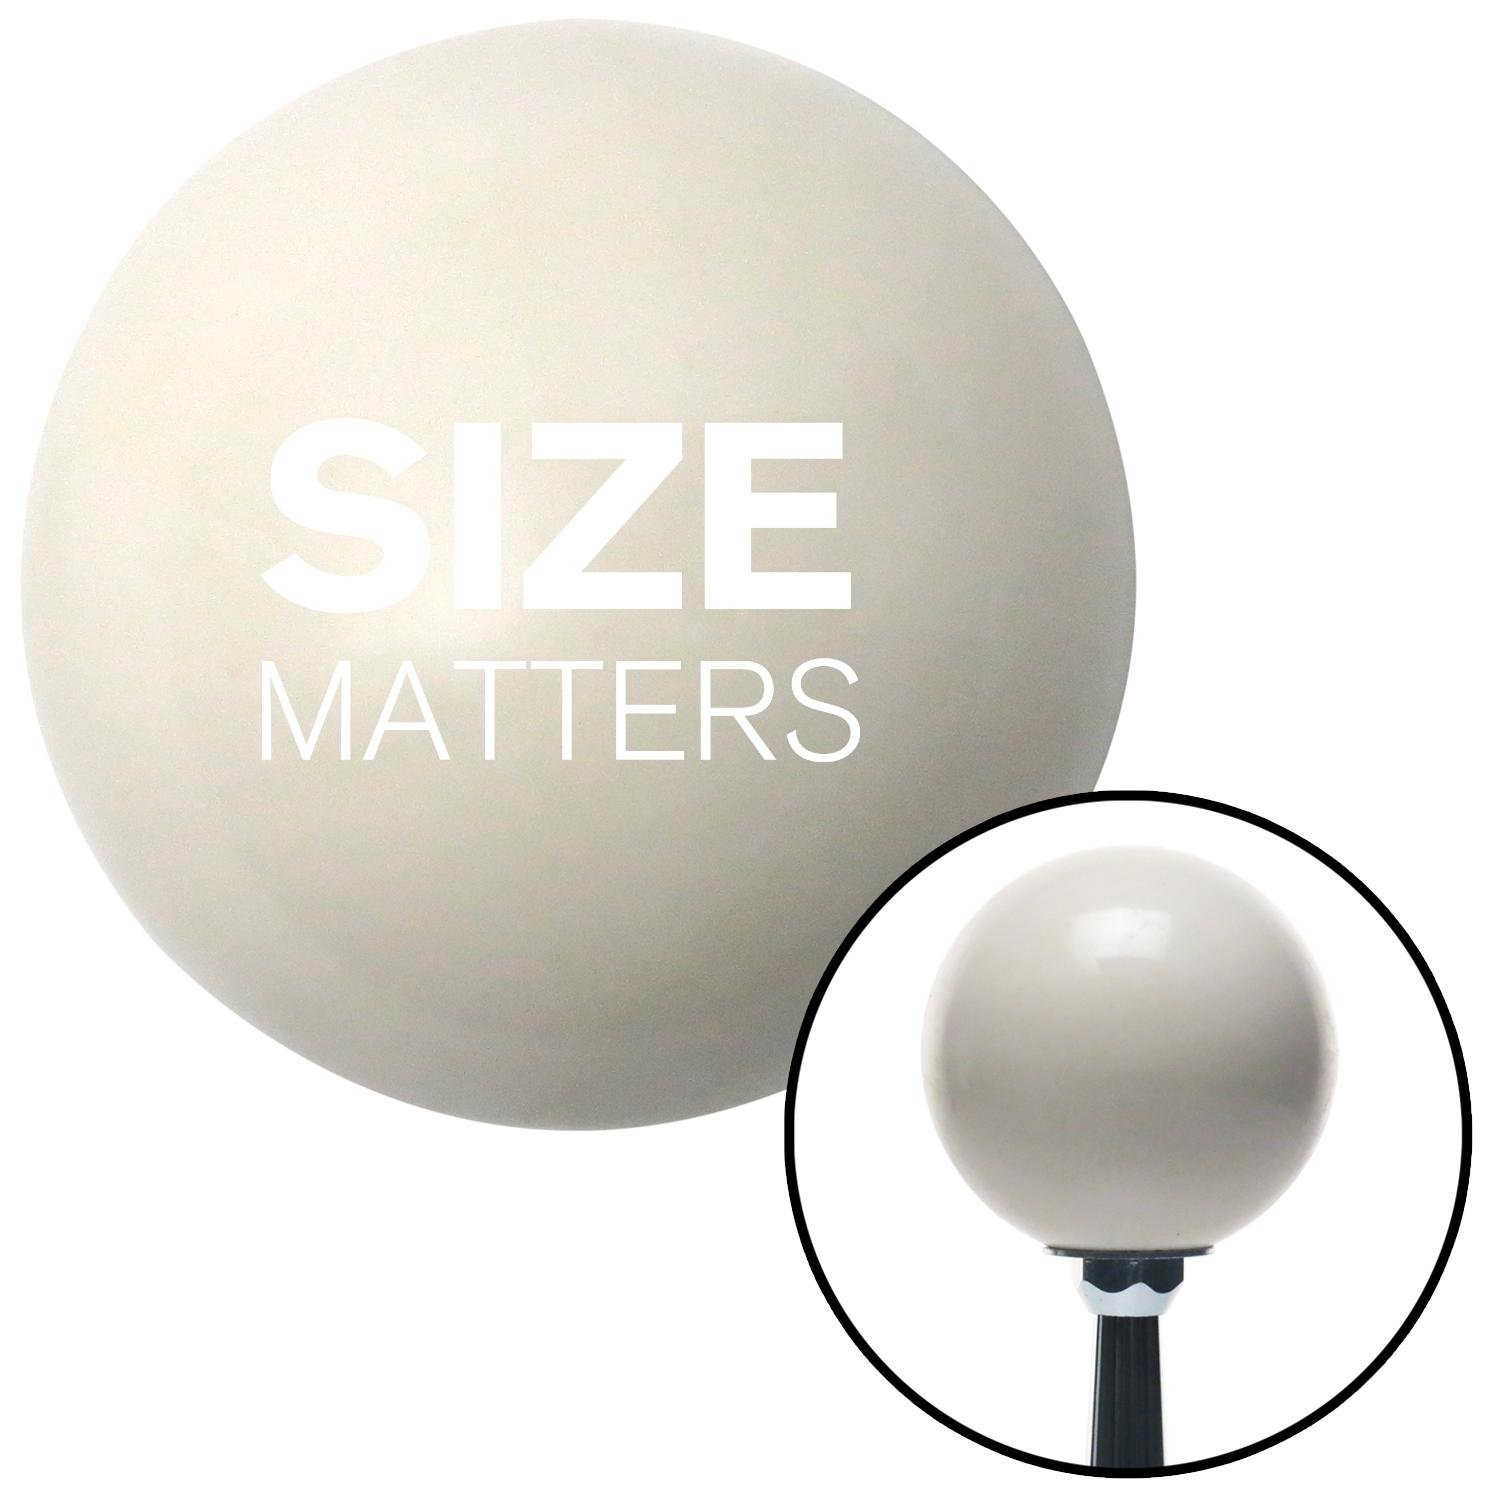 American Shifter 34426 Ivory Shift Knob with 16mm x 1.5 Insert White Size Matters